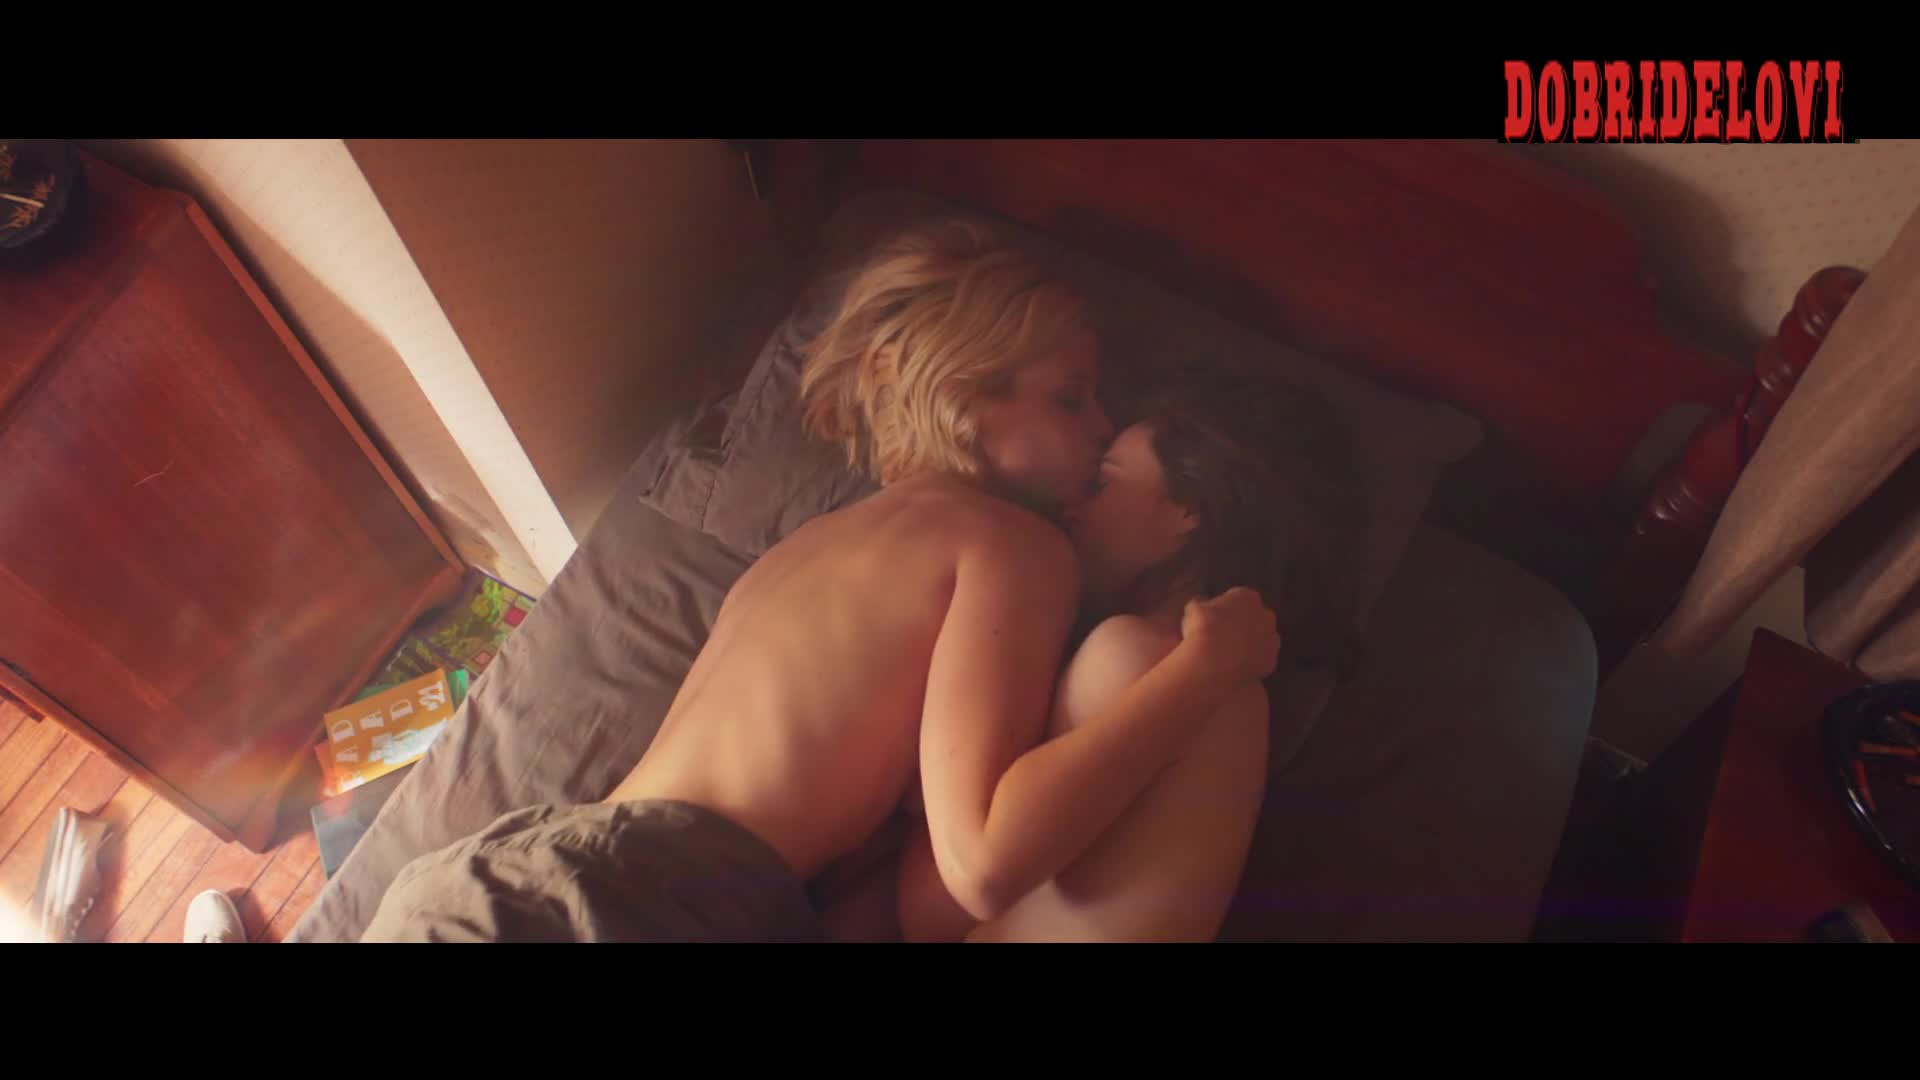 Ellen Page and Kate Mara lay topless in bed